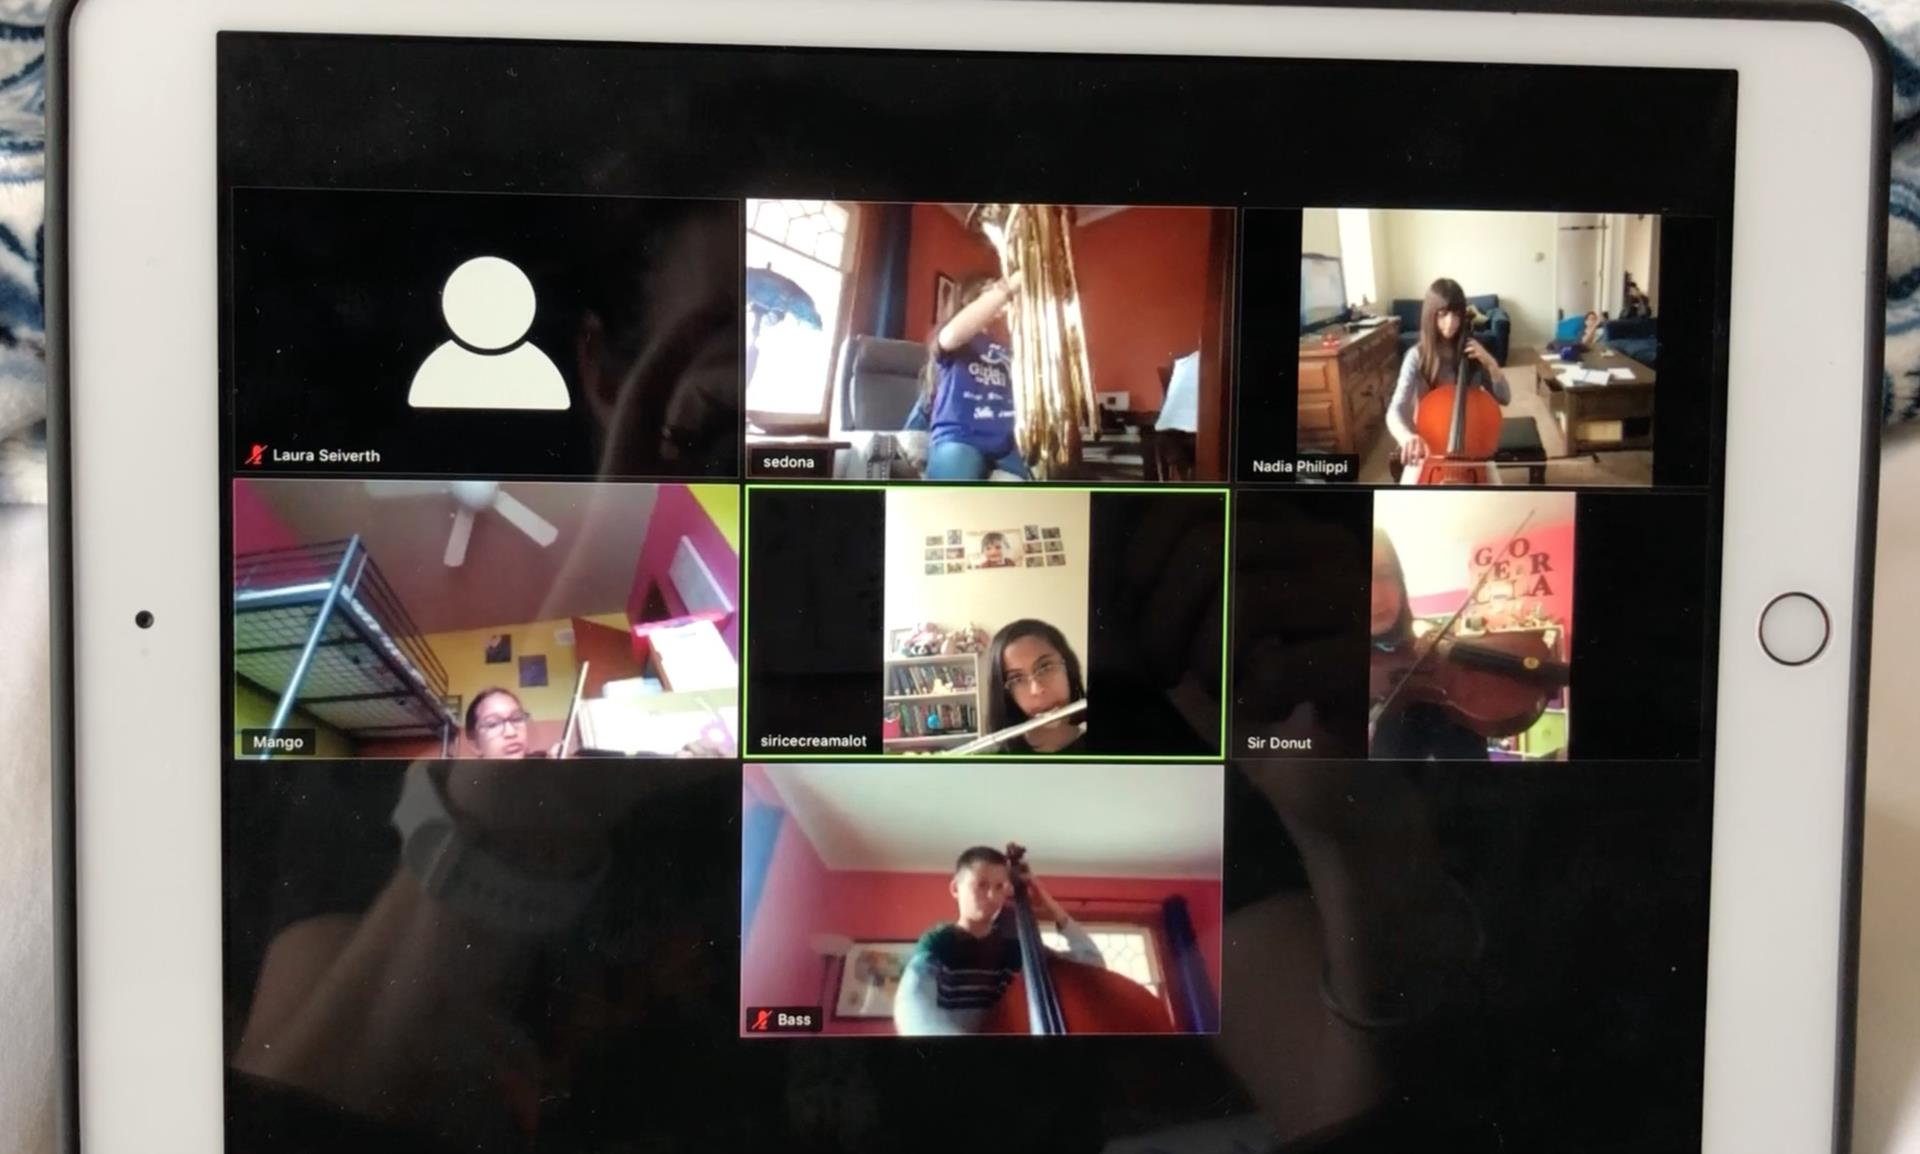 six students in a grid playing instruments